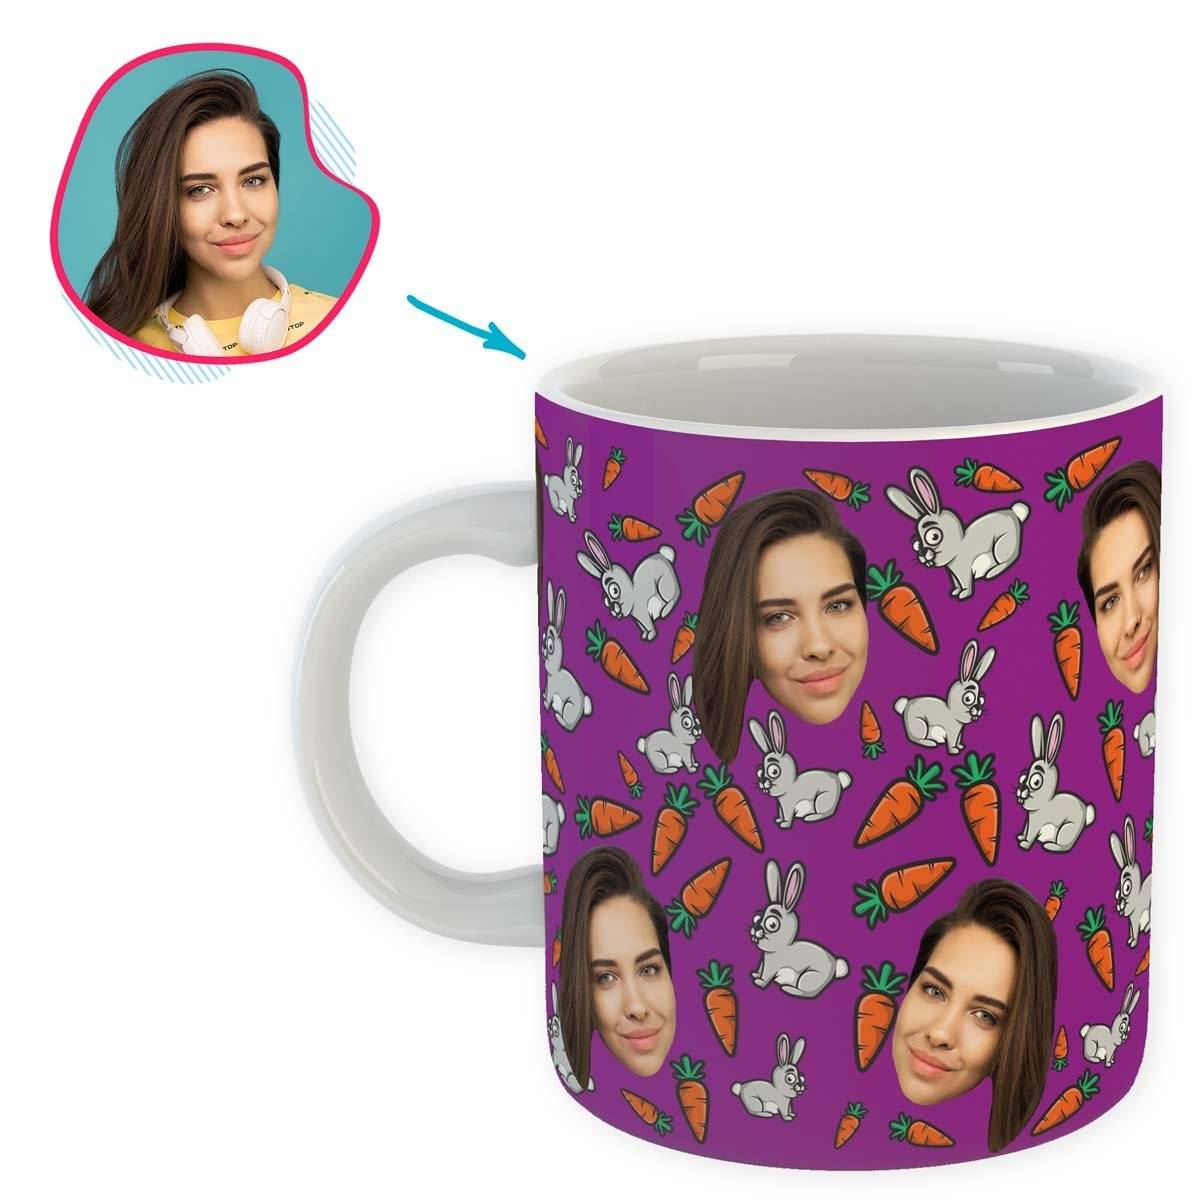 purple Bunny mug personalized with photo of face printed on it